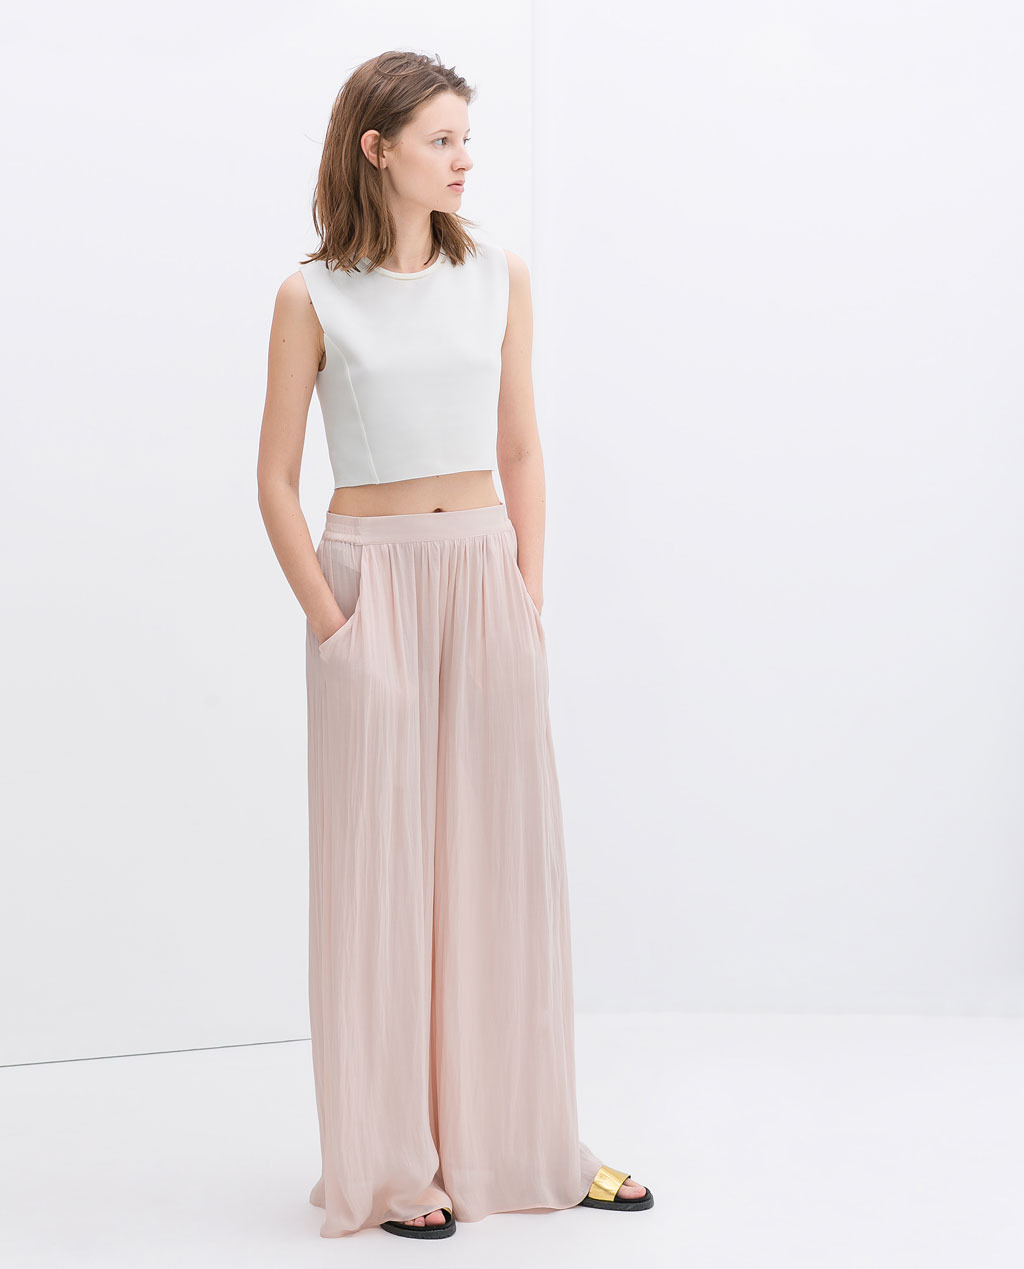 Wide Palazzo Trousers - length: standard; pattern: plain; style: palazzo; waist detail: elasticated waist; pocket detail: pockets at the sides; waist: mid/regular rise; predominant colour: blush; occasions: casual, holiday; fibres: polyester/polyamide - 100%; texture group: sheer fabrics/chiffon/organza etc.; fit: wide leg; pattern type: fabric; trends: sorbet shades; season: s/s 2014